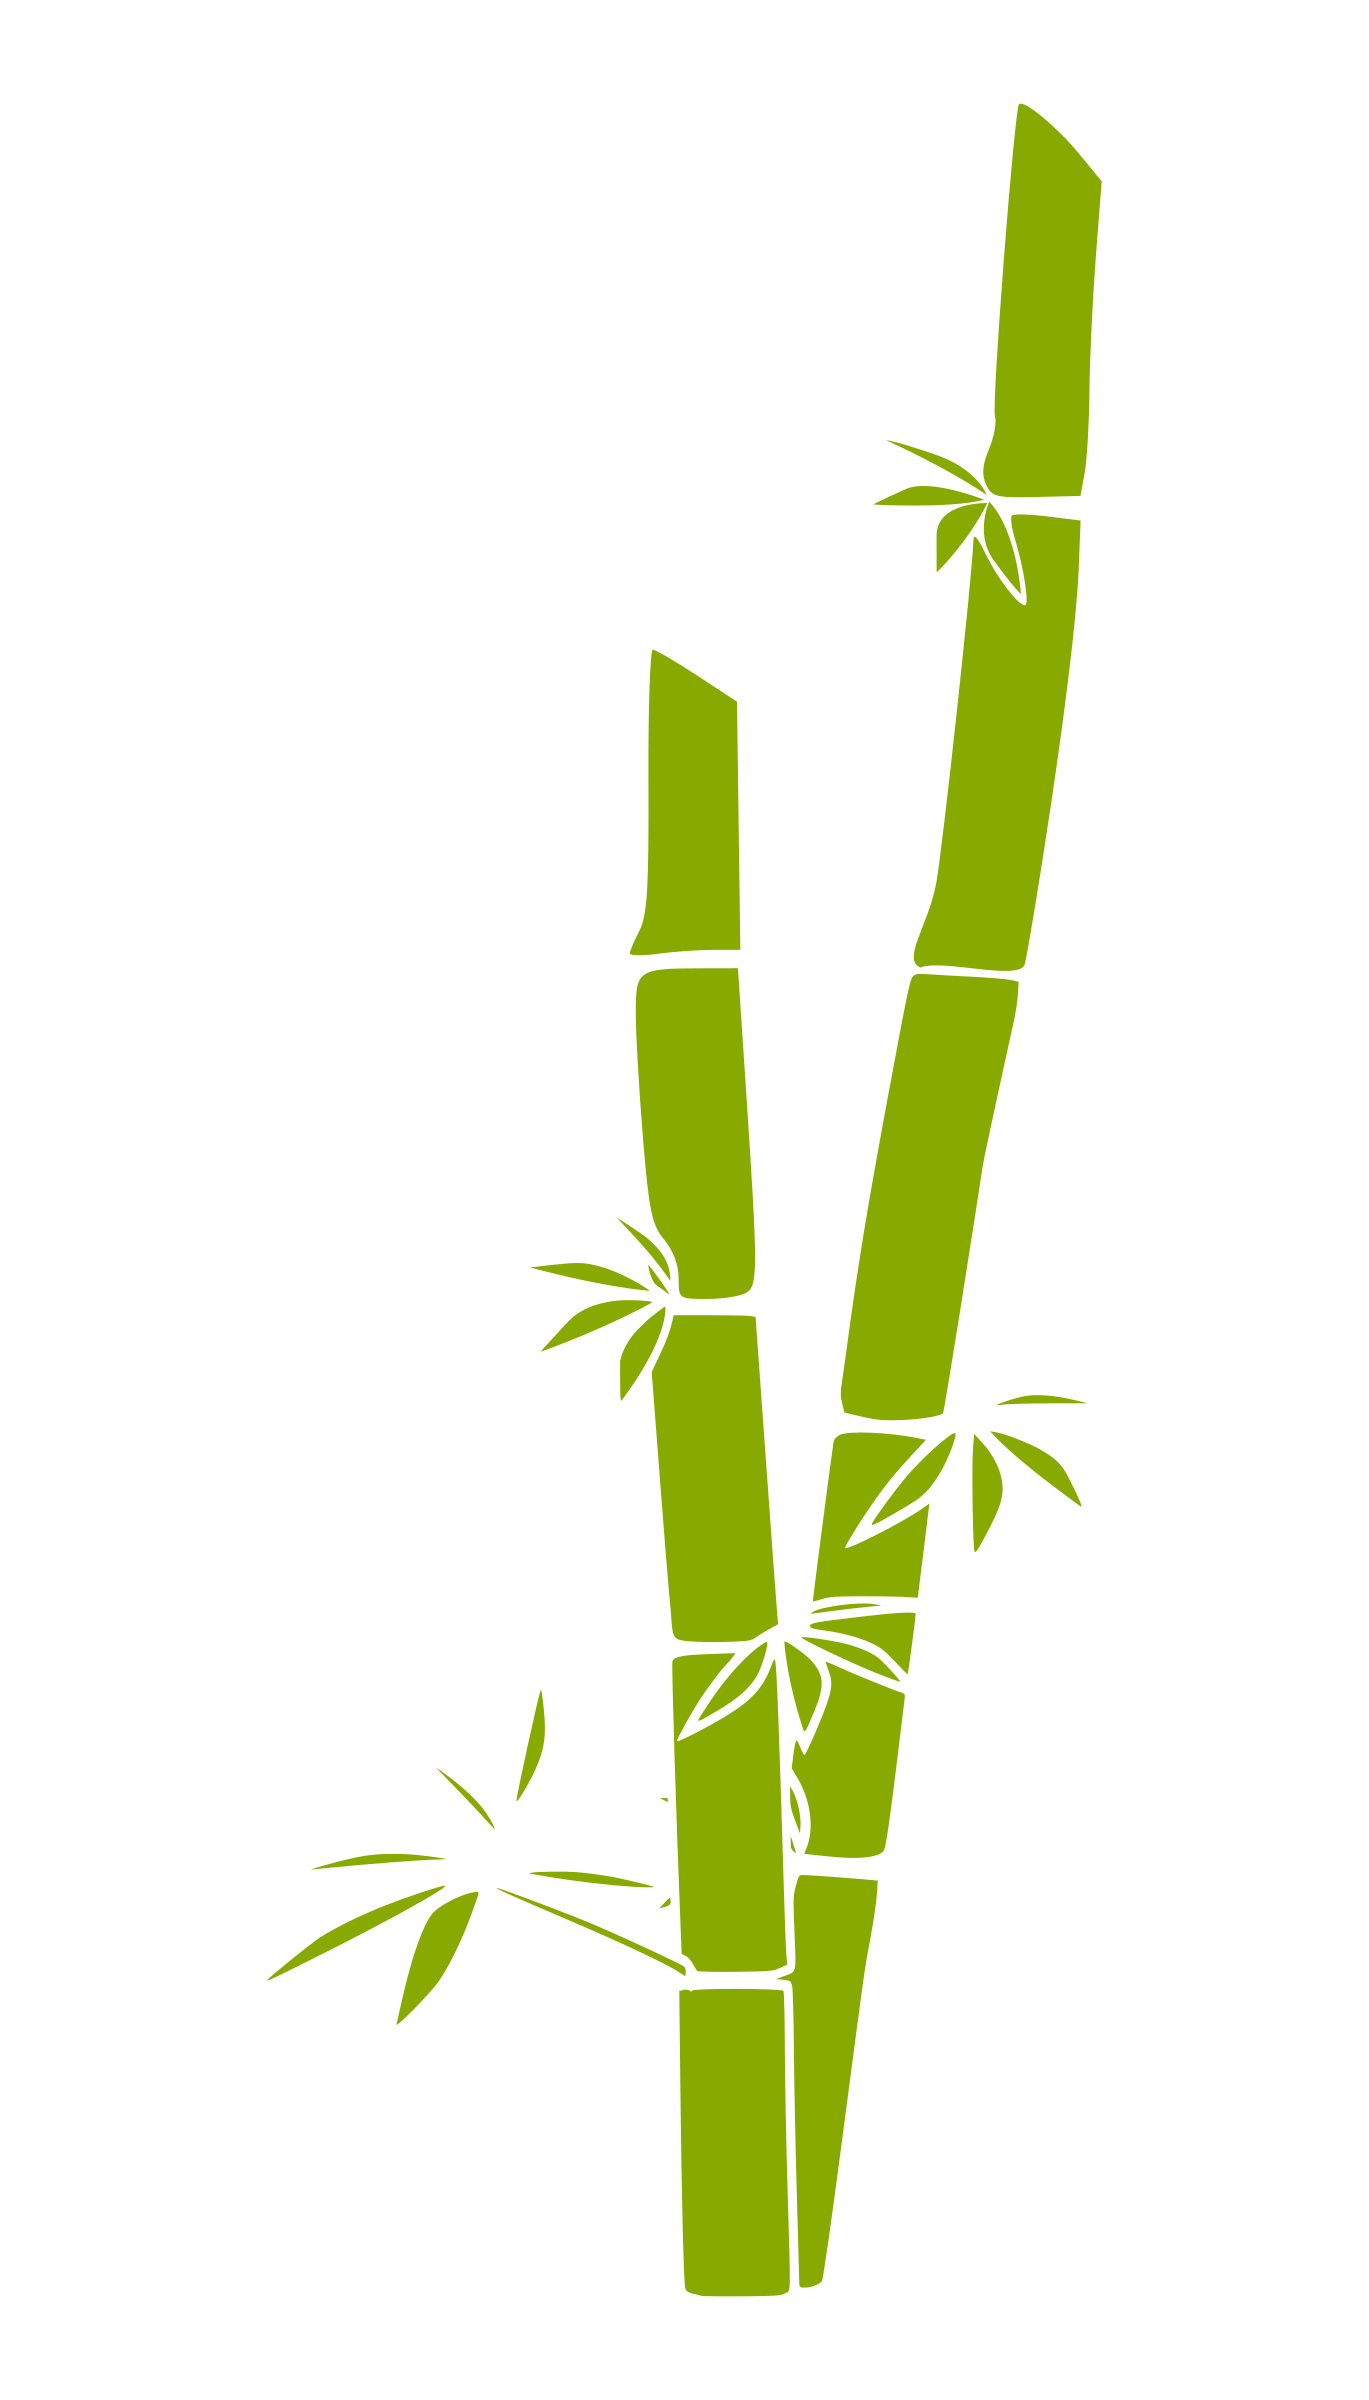 Bamboo silhouette png. Clipart big image